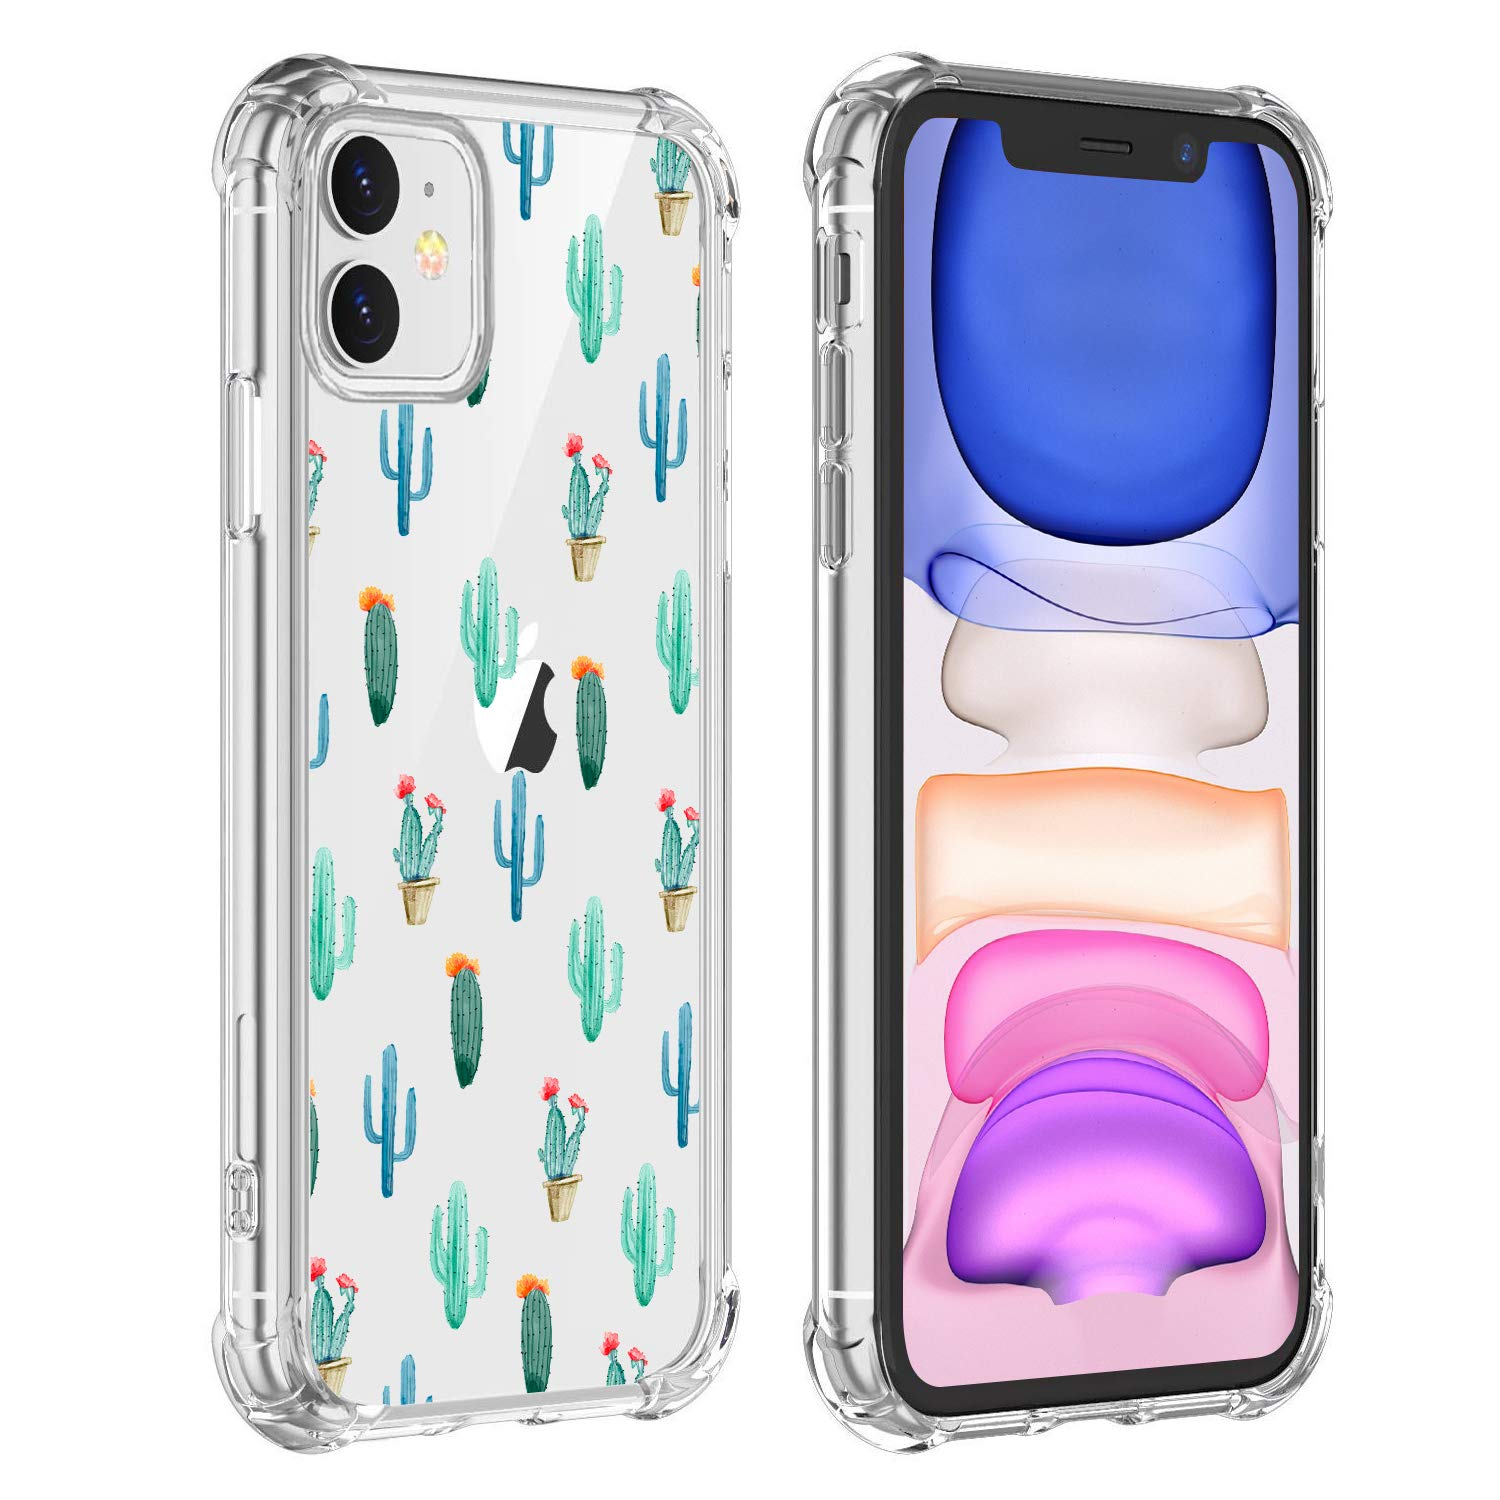 Hi Space Cactus Case for iPhone 11, Cacti Girls and Women Floral Back Cover, Transparent Flexible TPU Bumper Shockproof Protective Case